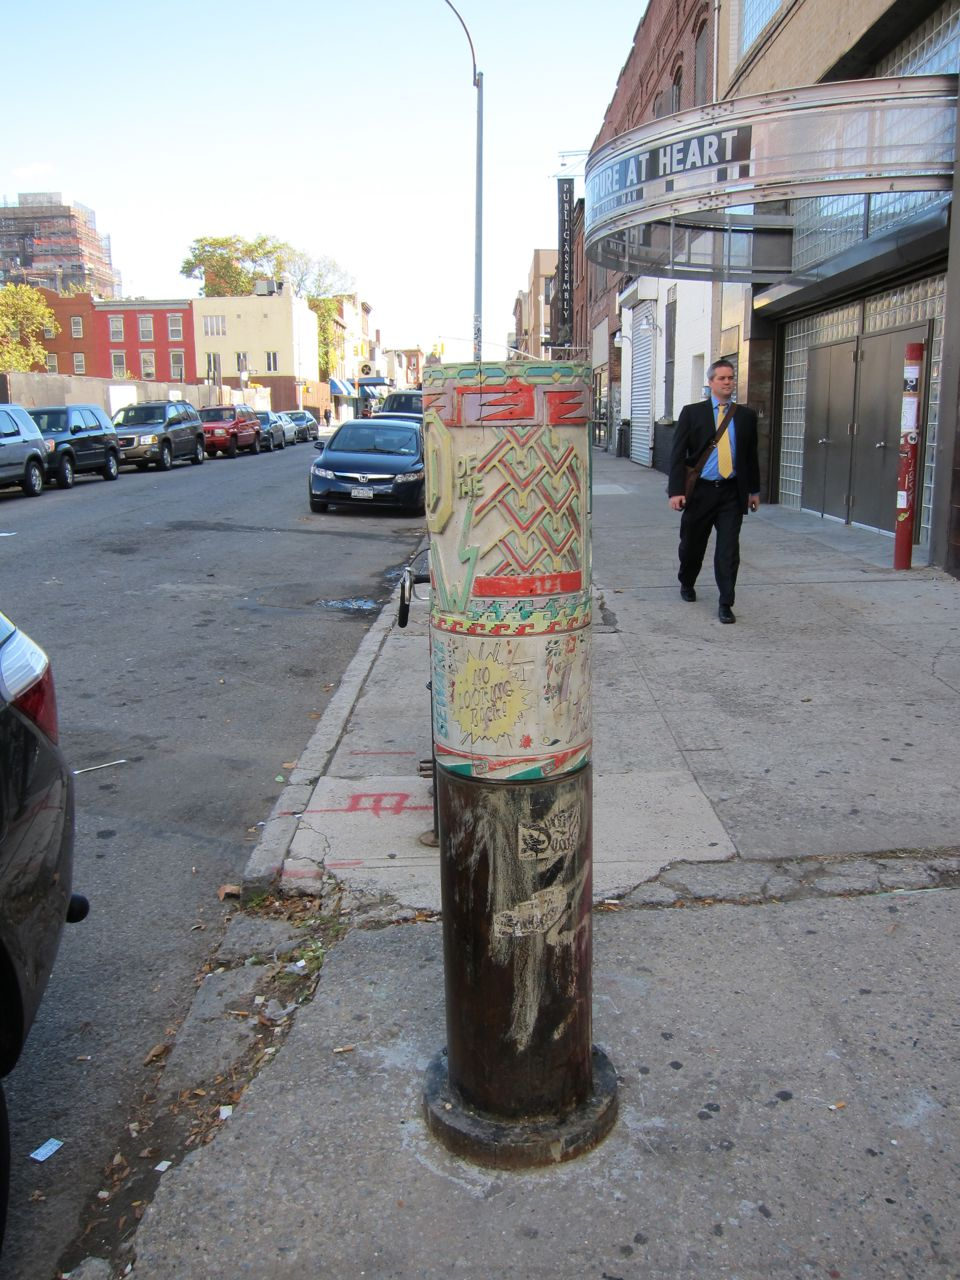 A prayer wheel in the wild! It is almost a year old...